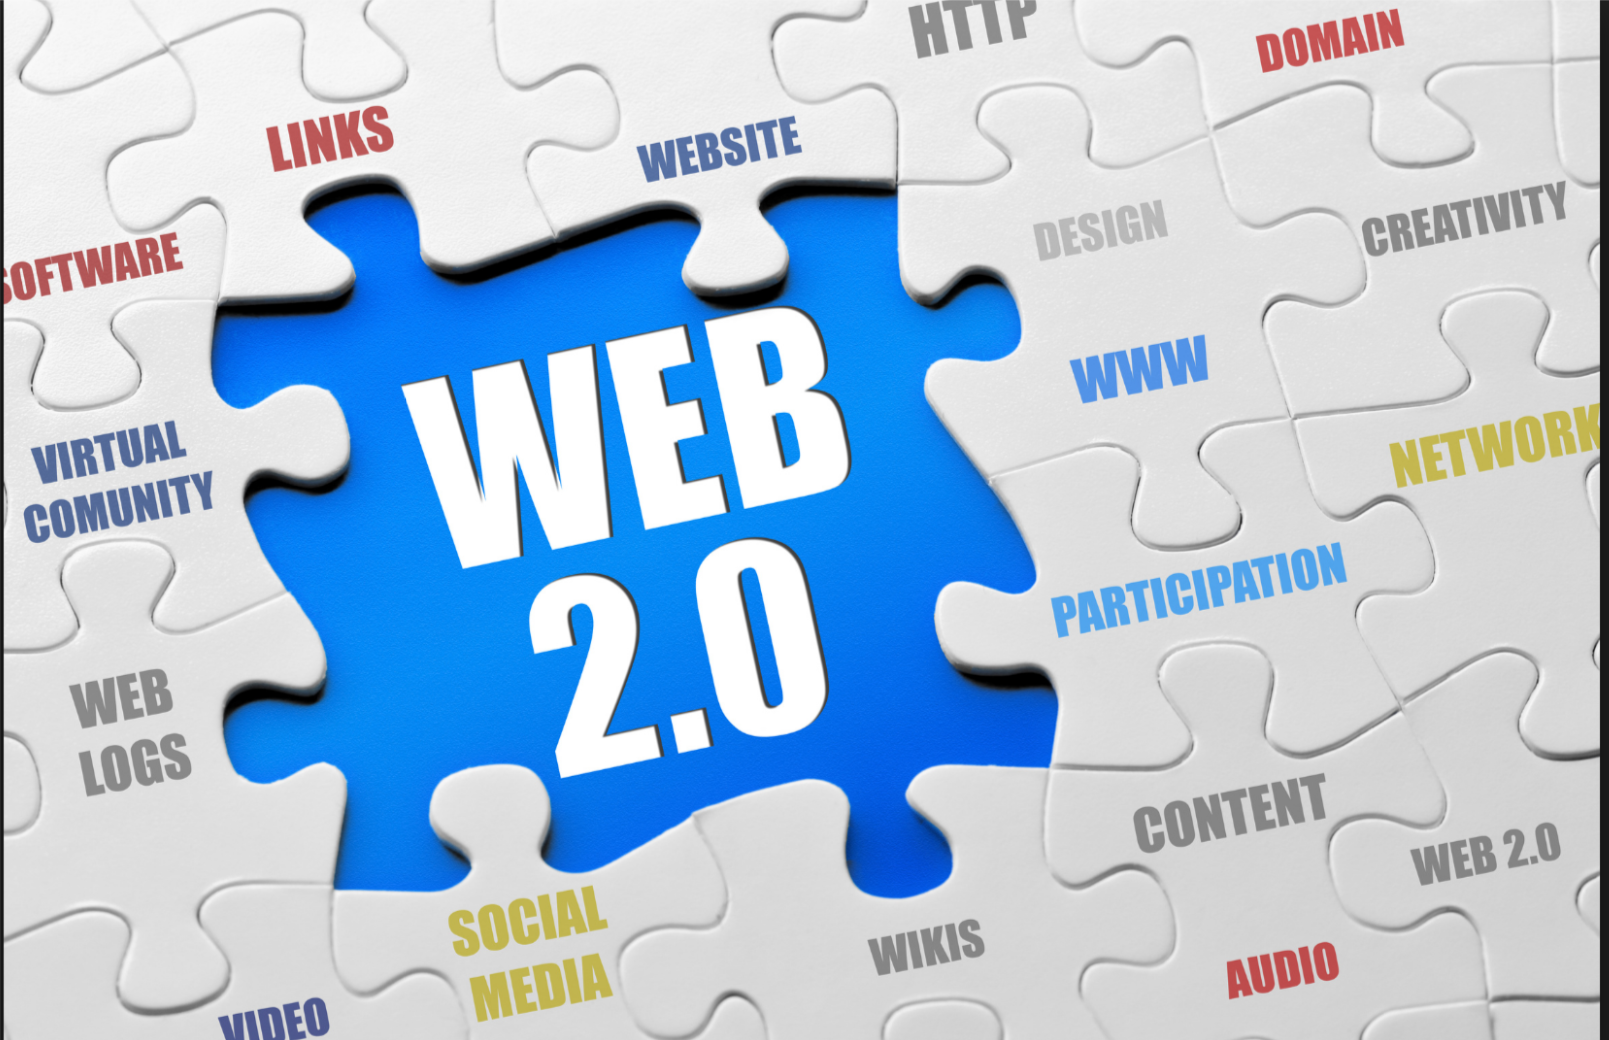 Post to Web 2.0 High PA Manual Up to thousands of blogs